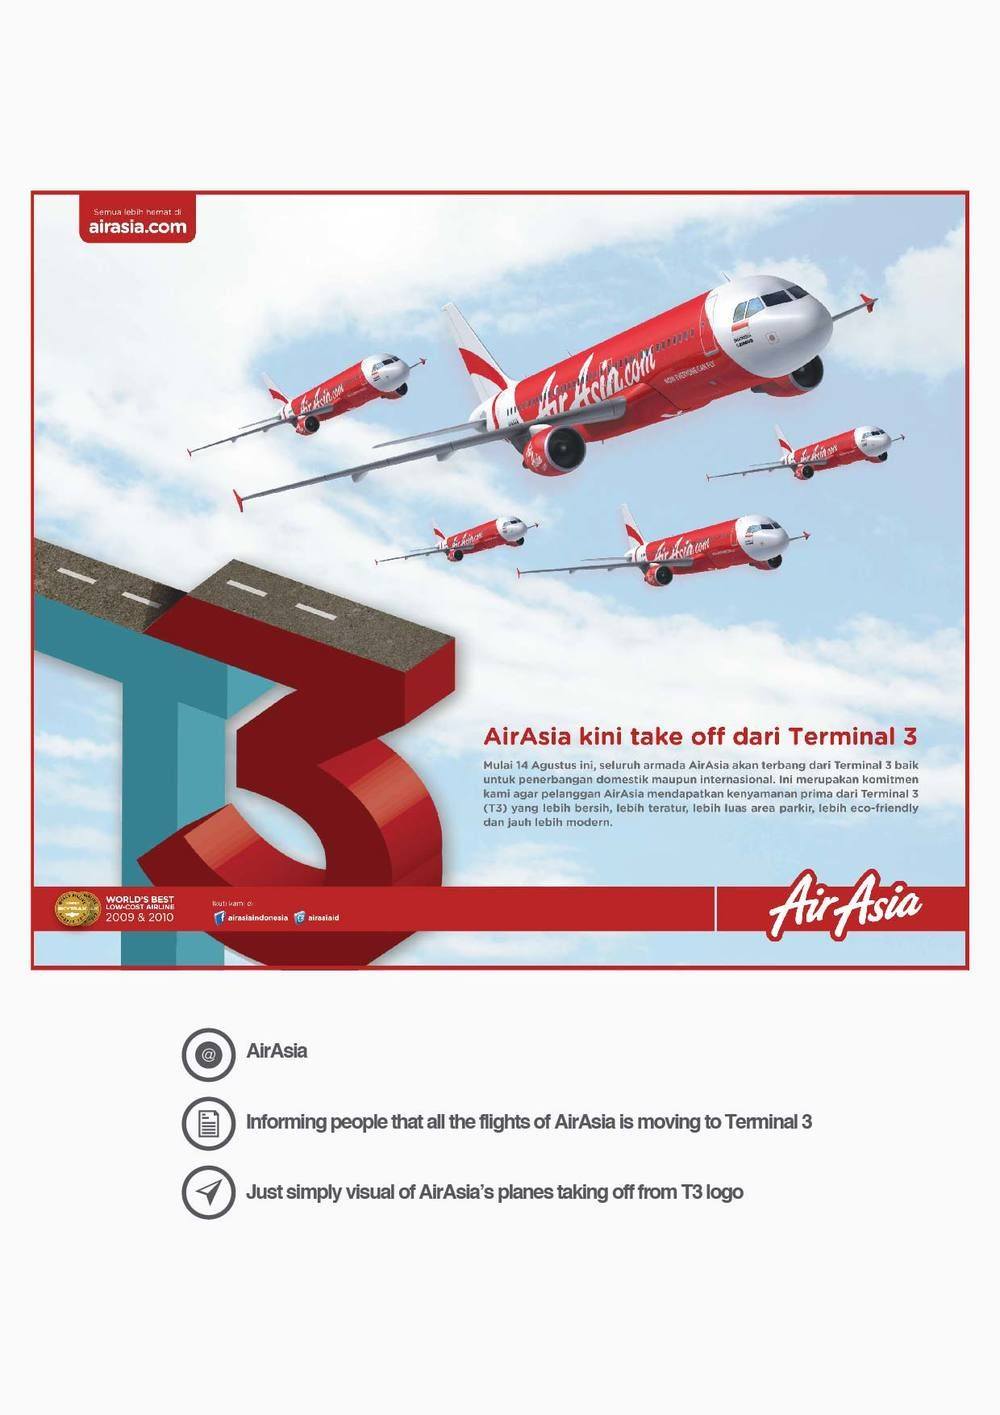 AirAsia's Print Ad Informing people that all the flights of